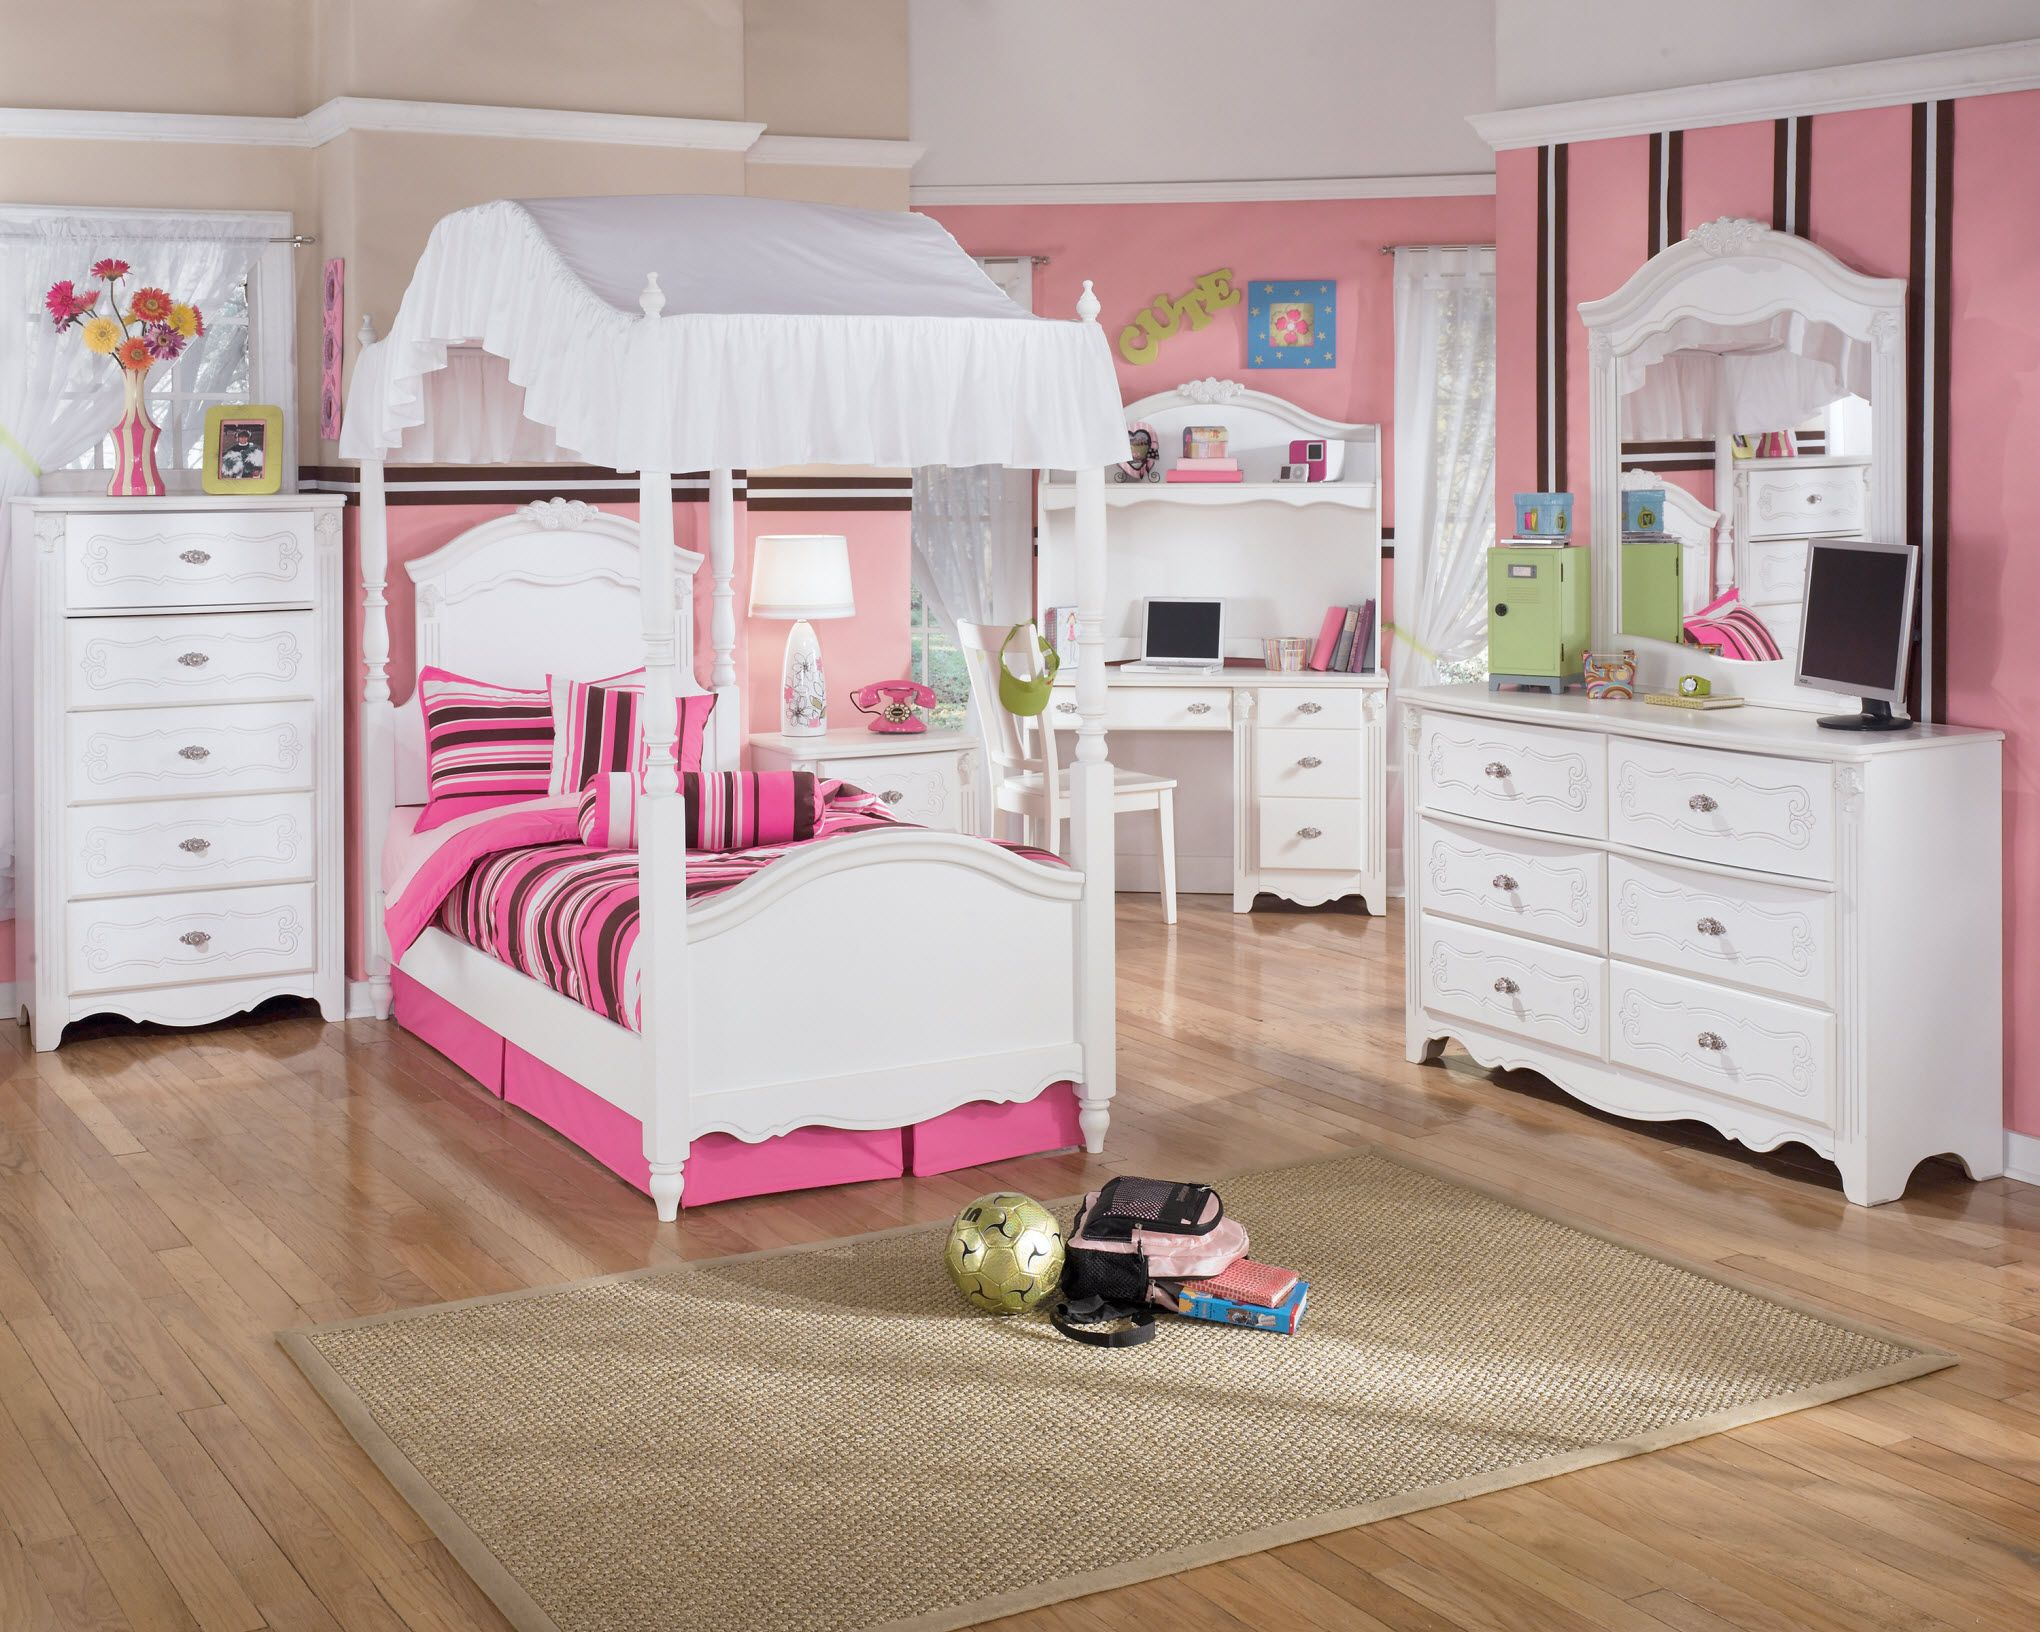 Kid Bedroom Stripe Pattern And White Bedroom Furniture Set Theme Color For  Your Kids How To. Kid Bedroom Stripe Pattern And White Bedroom Furniture Set Theme